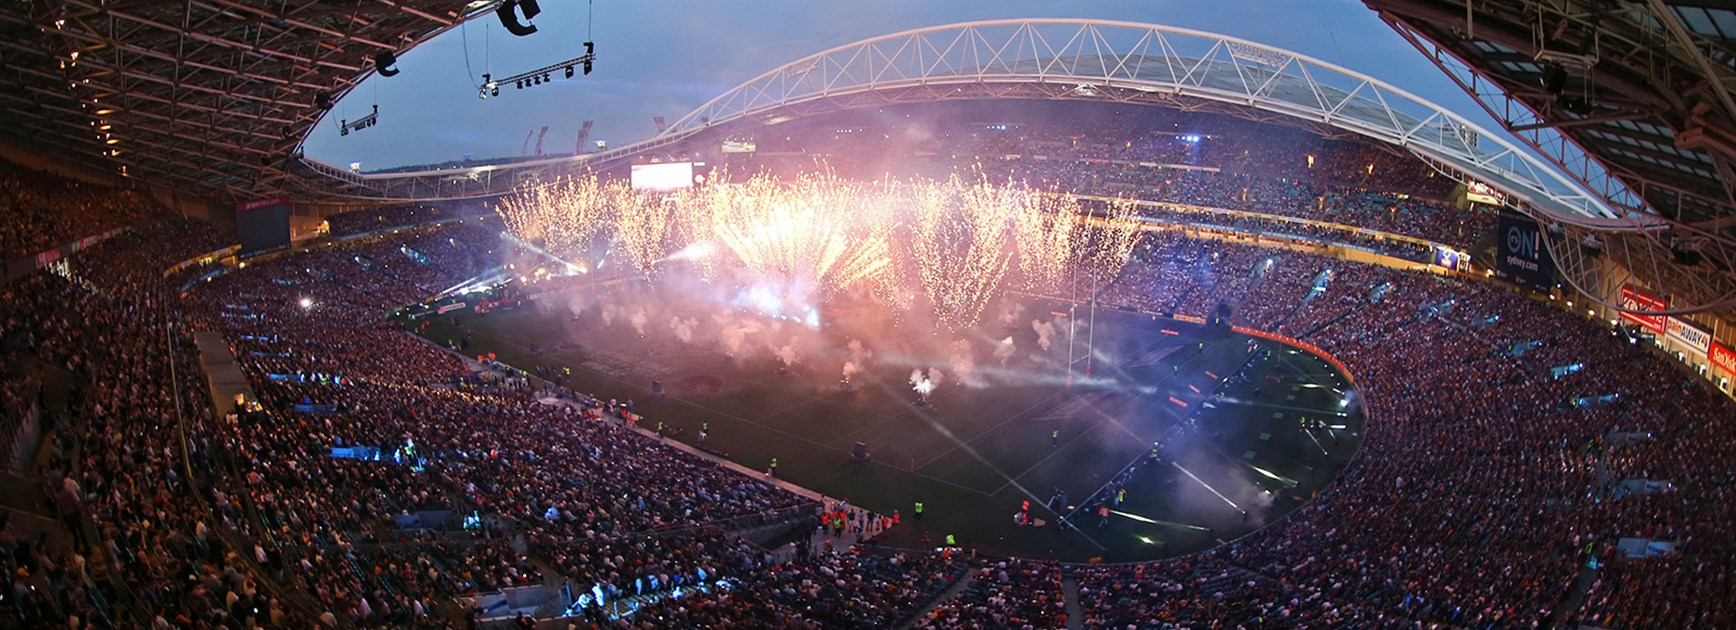 Pre-game show at the 2015 NRL Telstra Premiership Grand Final at ANZ Stadium.